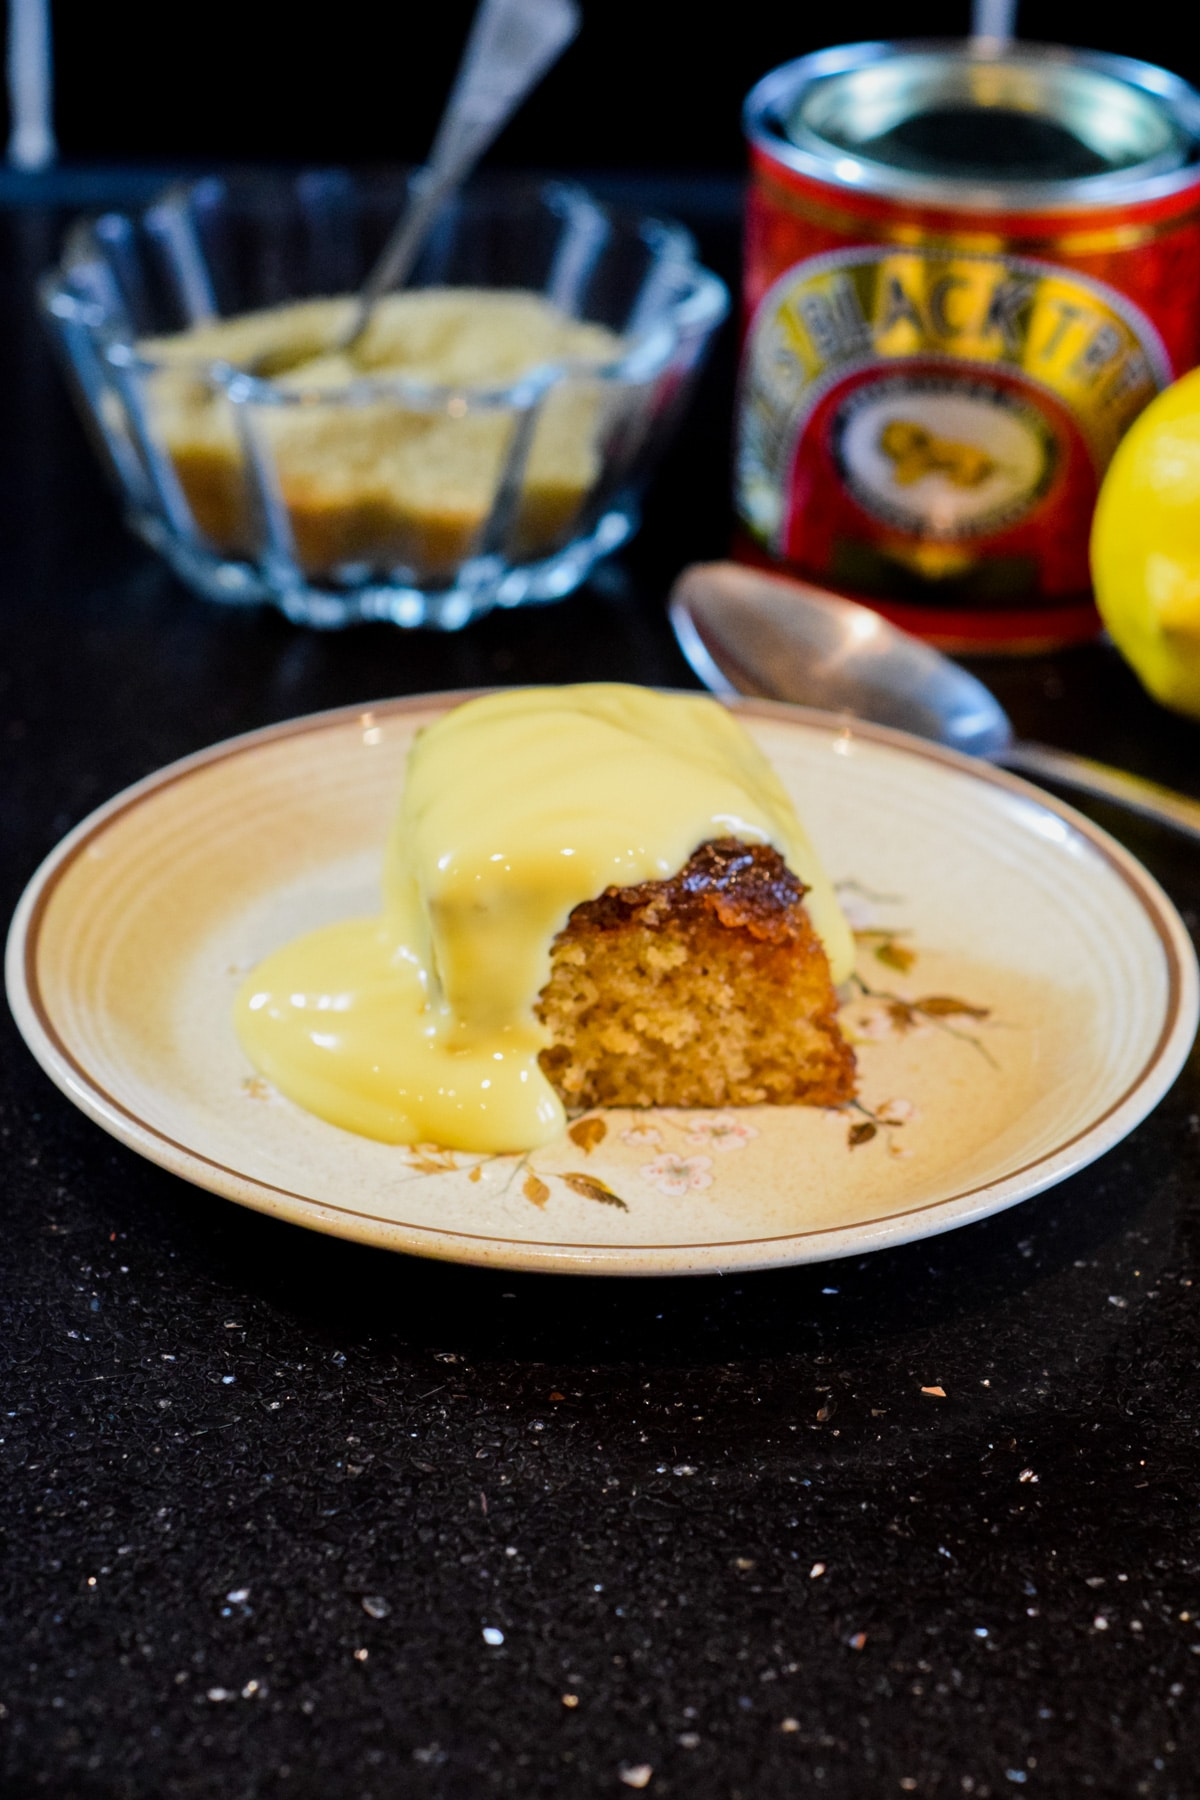 Hot treacle sponge pudding recipe with black treacle and golden syrup. Served with custard